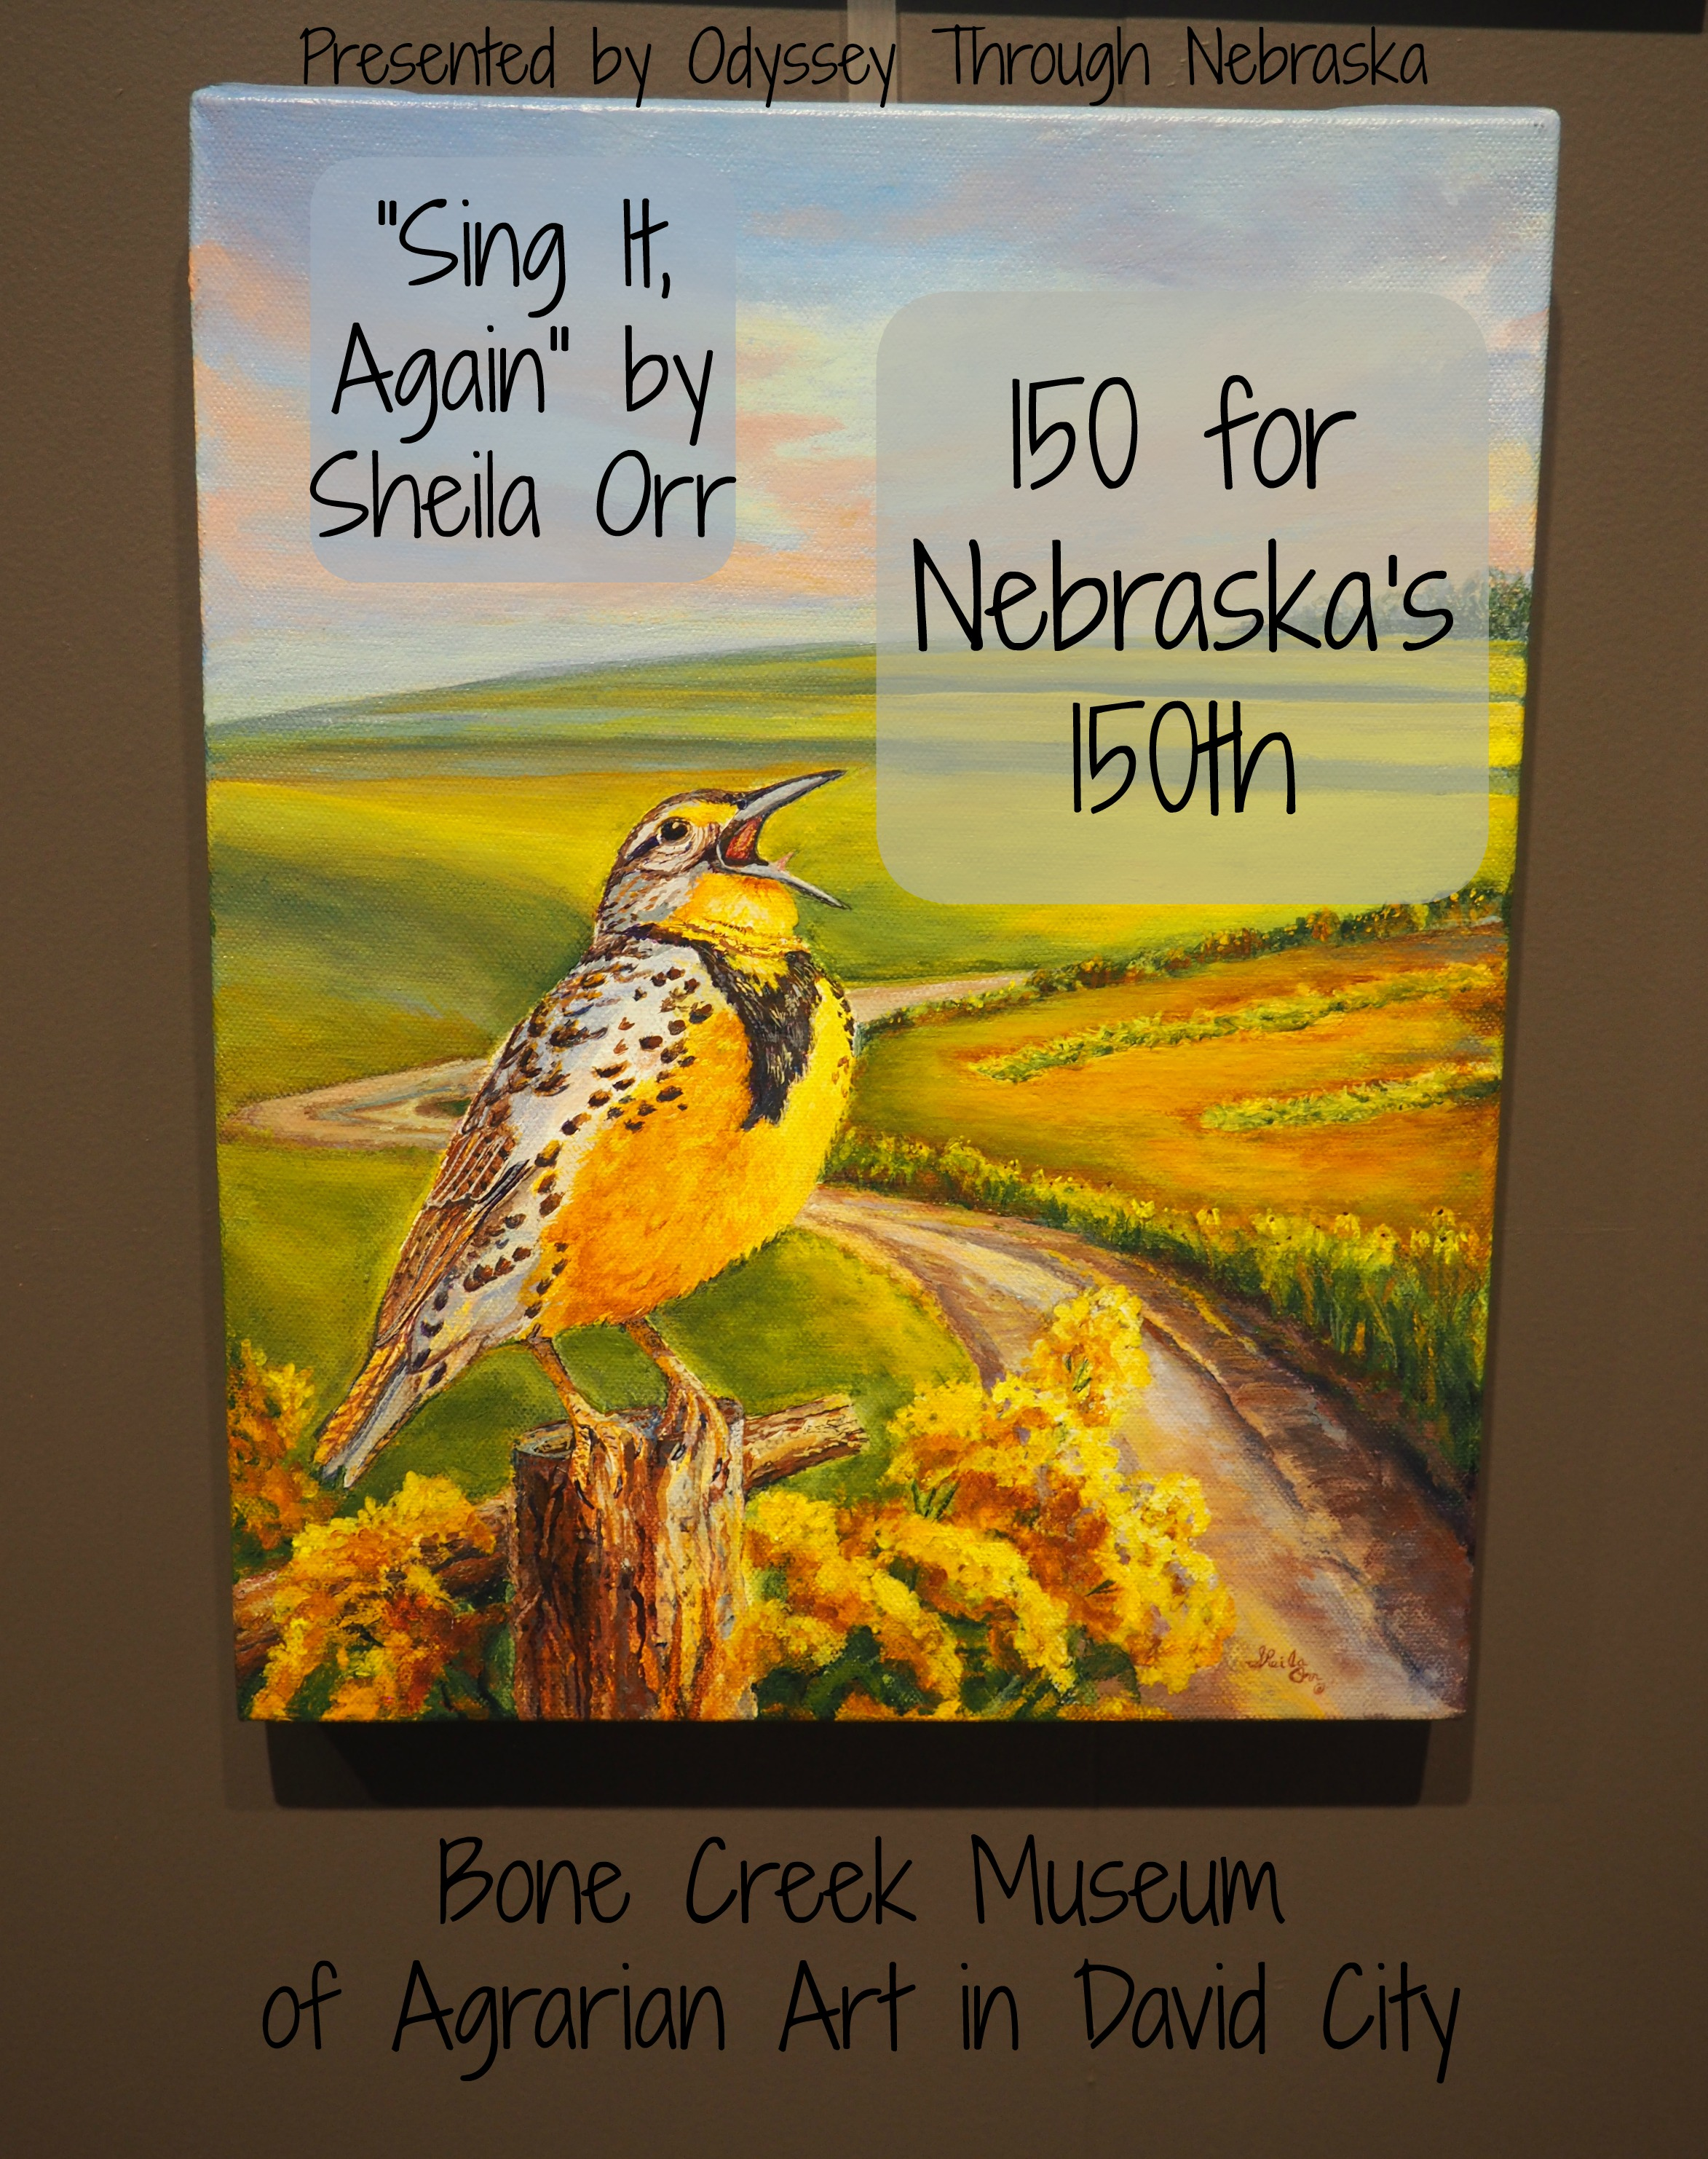 150 for Nebraska's 150th at Bone Creek Museum of Agrarian Art